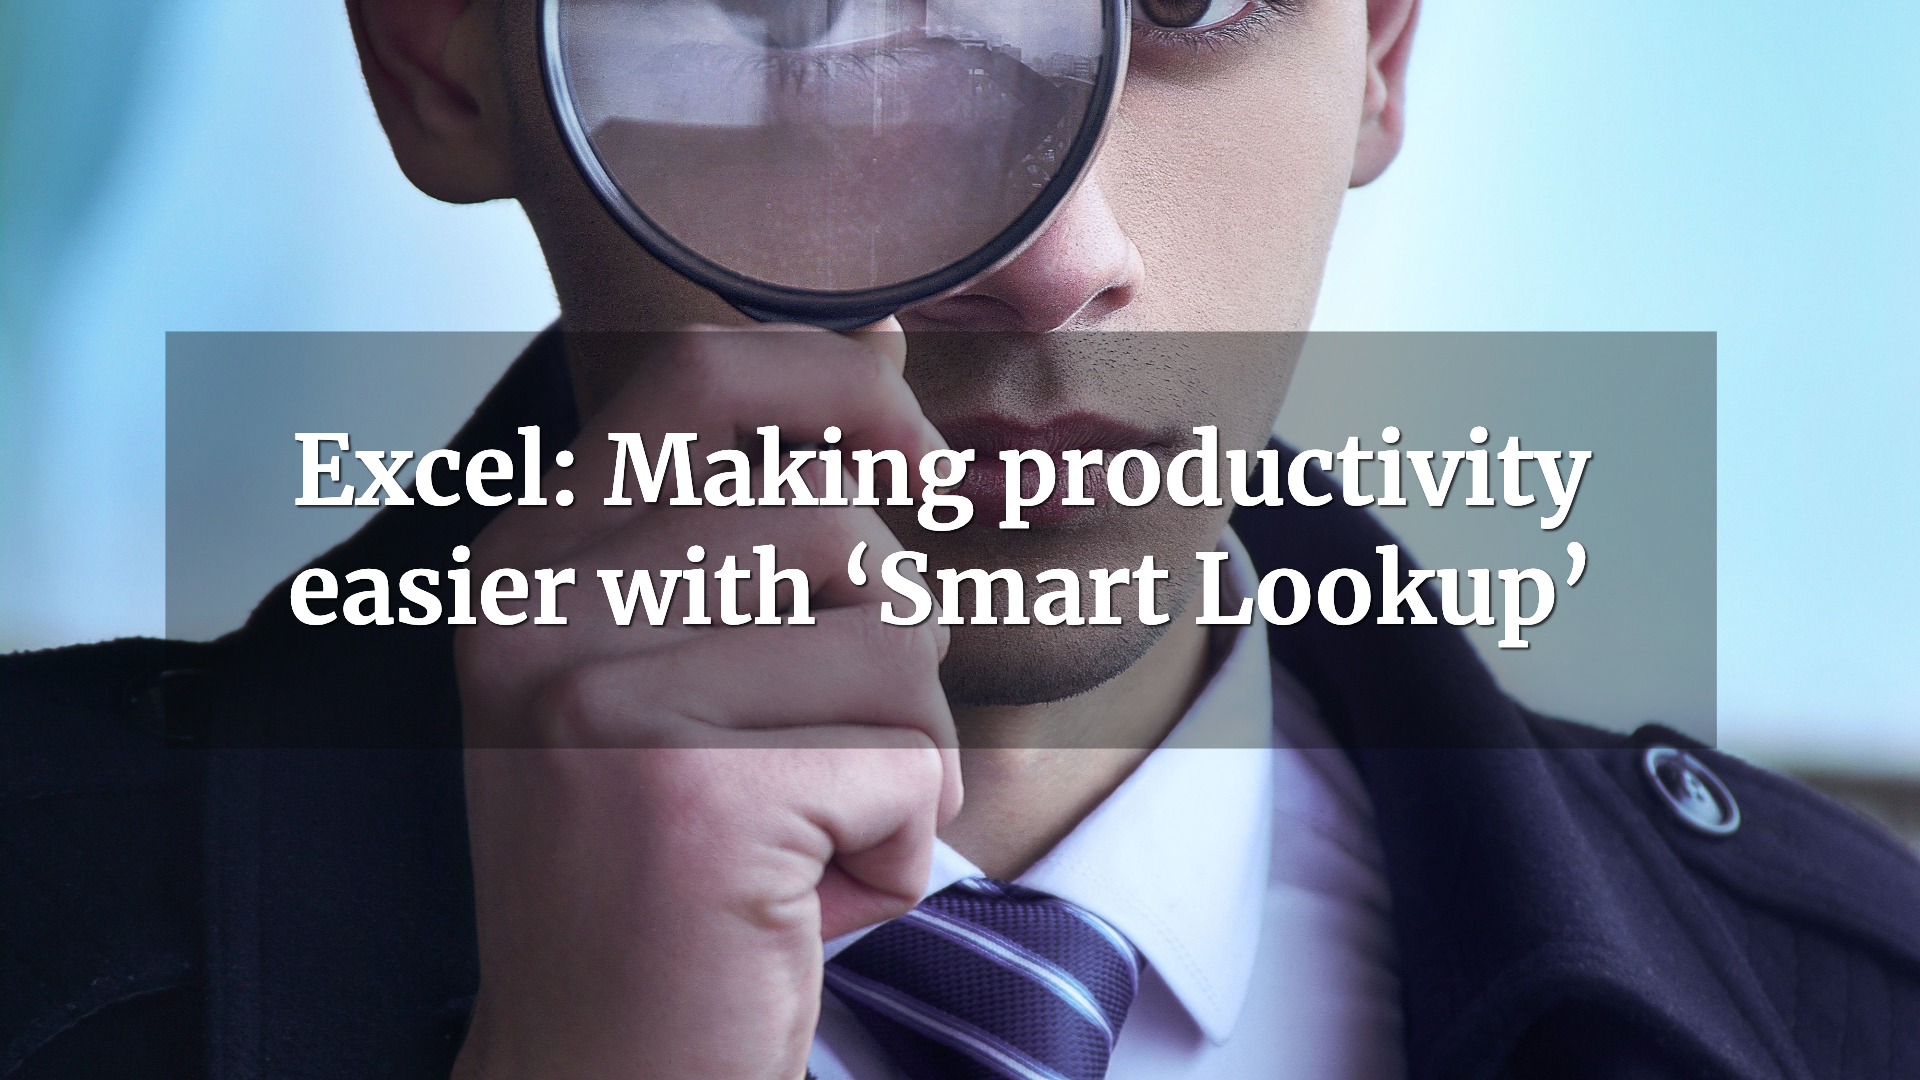 Excel: Making productivity easier with 'Smart Lookup'